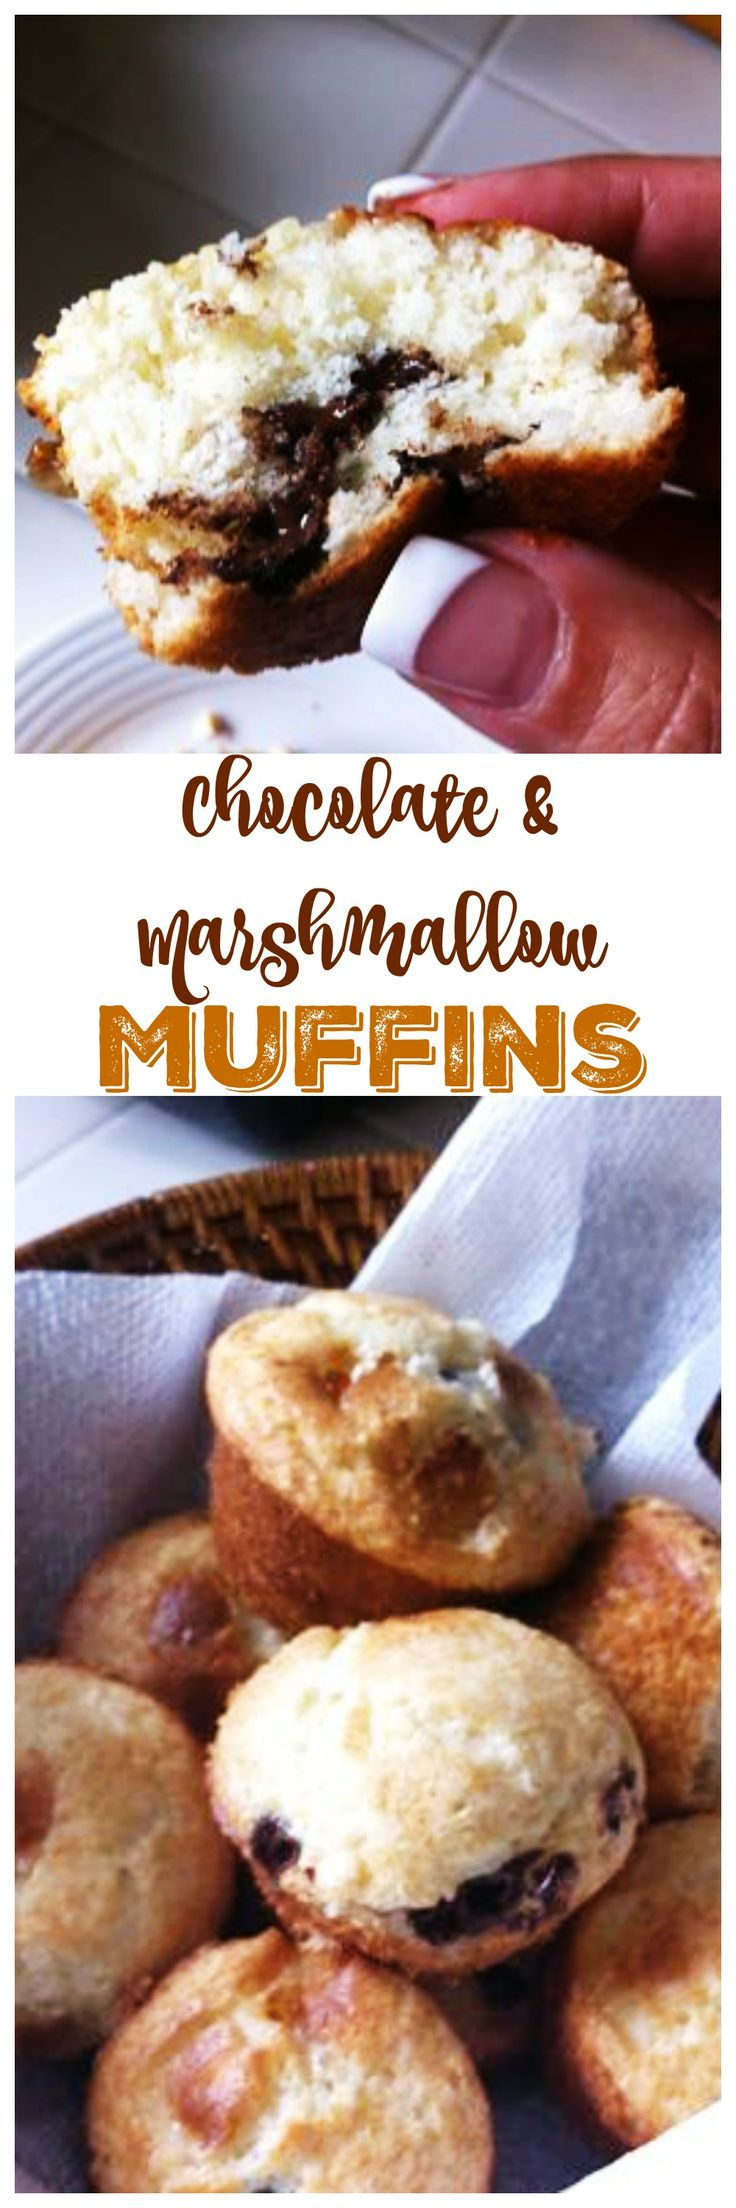 Chocolate and Marshmallow Muffin recipe - perfect for breakfast or lunch box